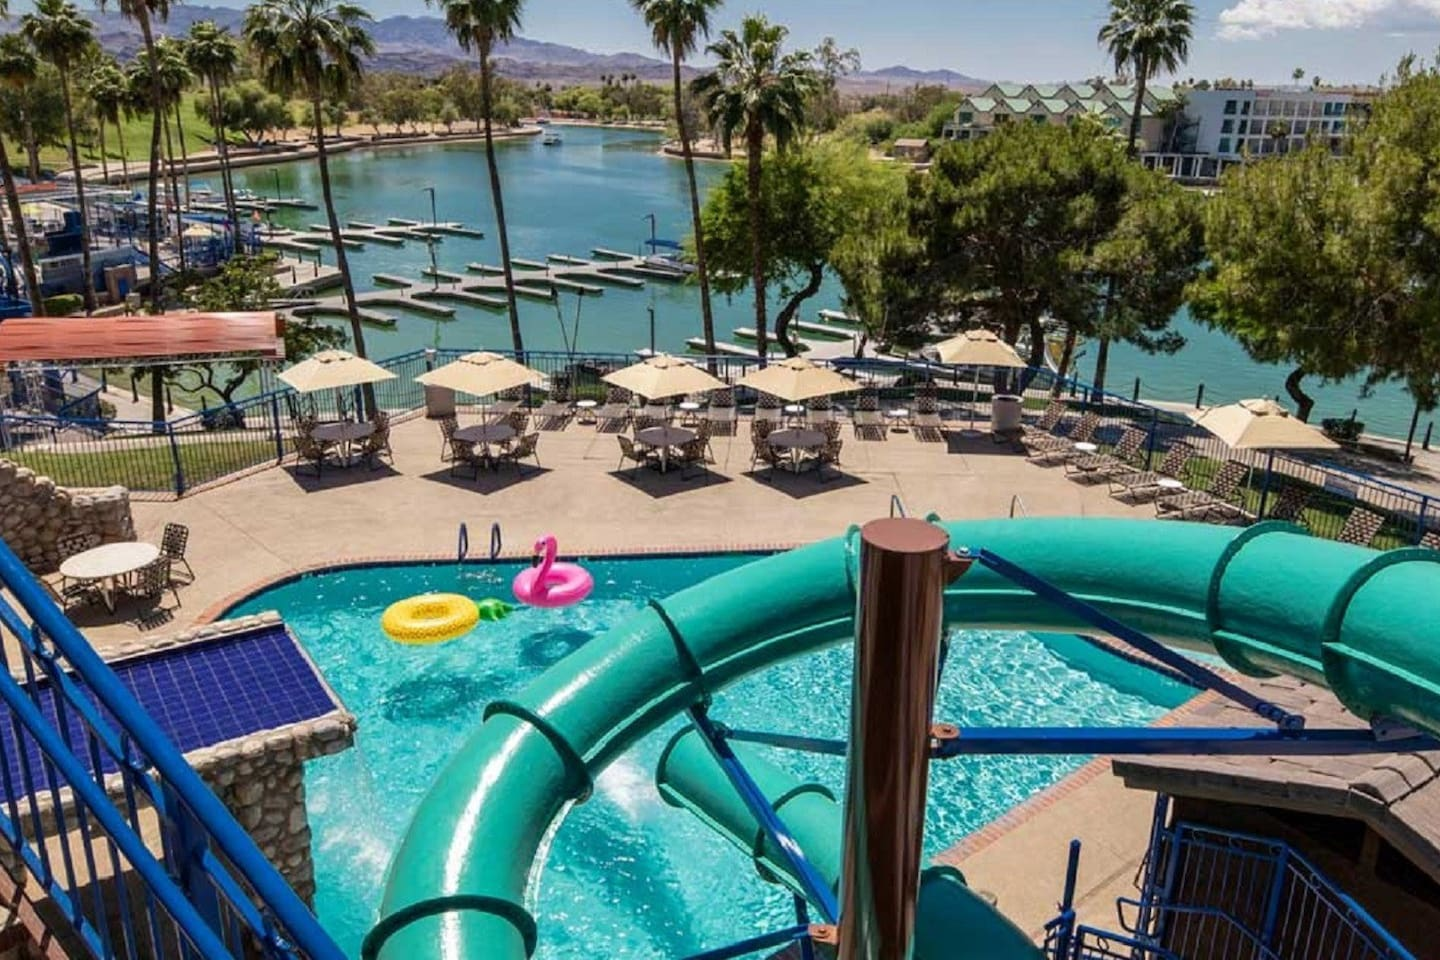 View from Water Slide into Splash Pool